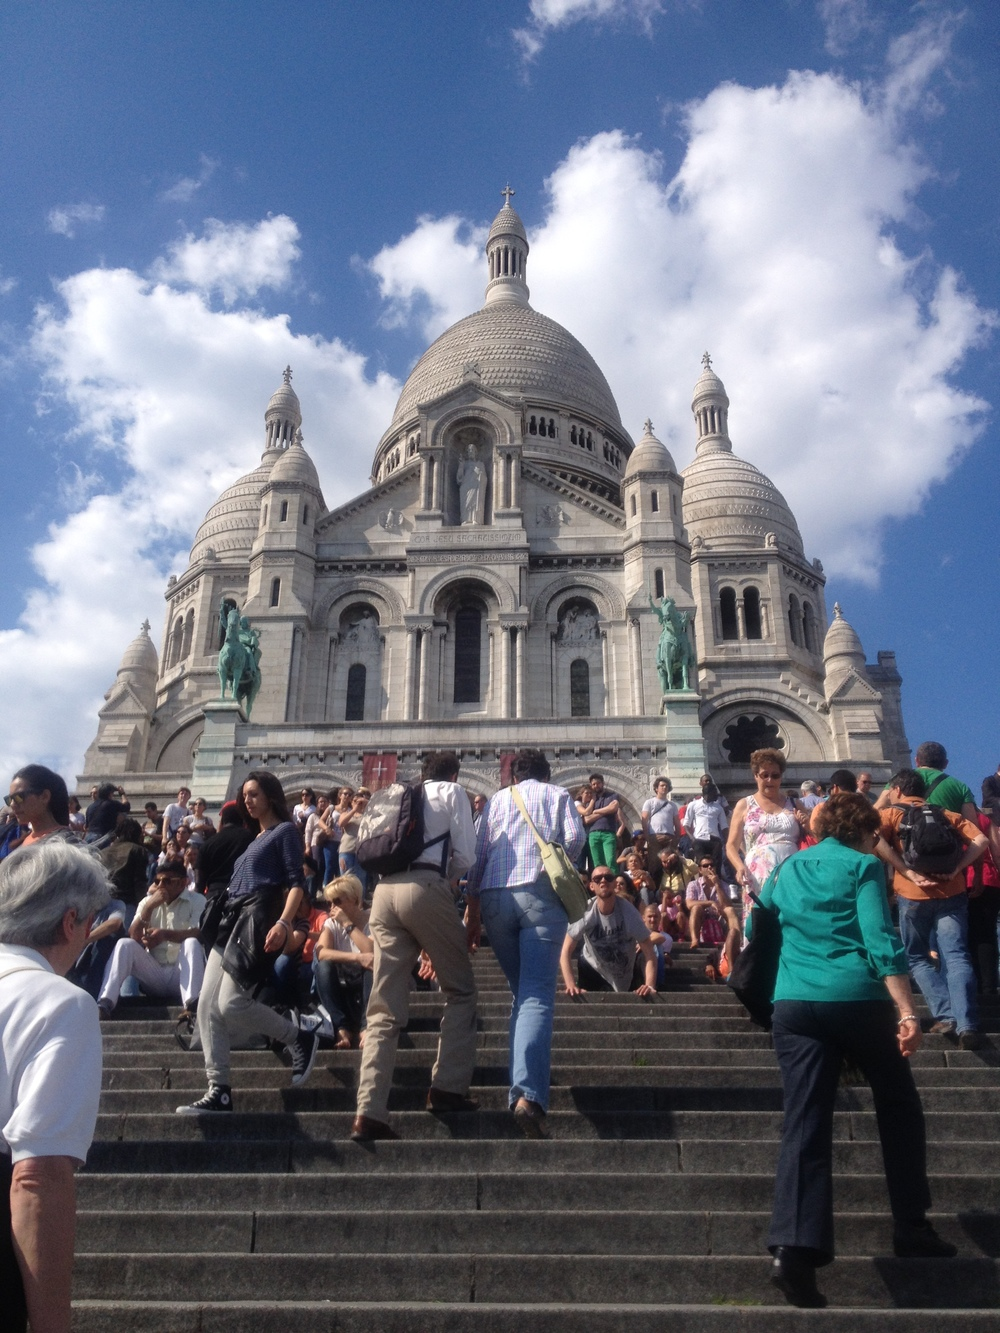 Sacré-Cœur Basilica in  Paris, France.